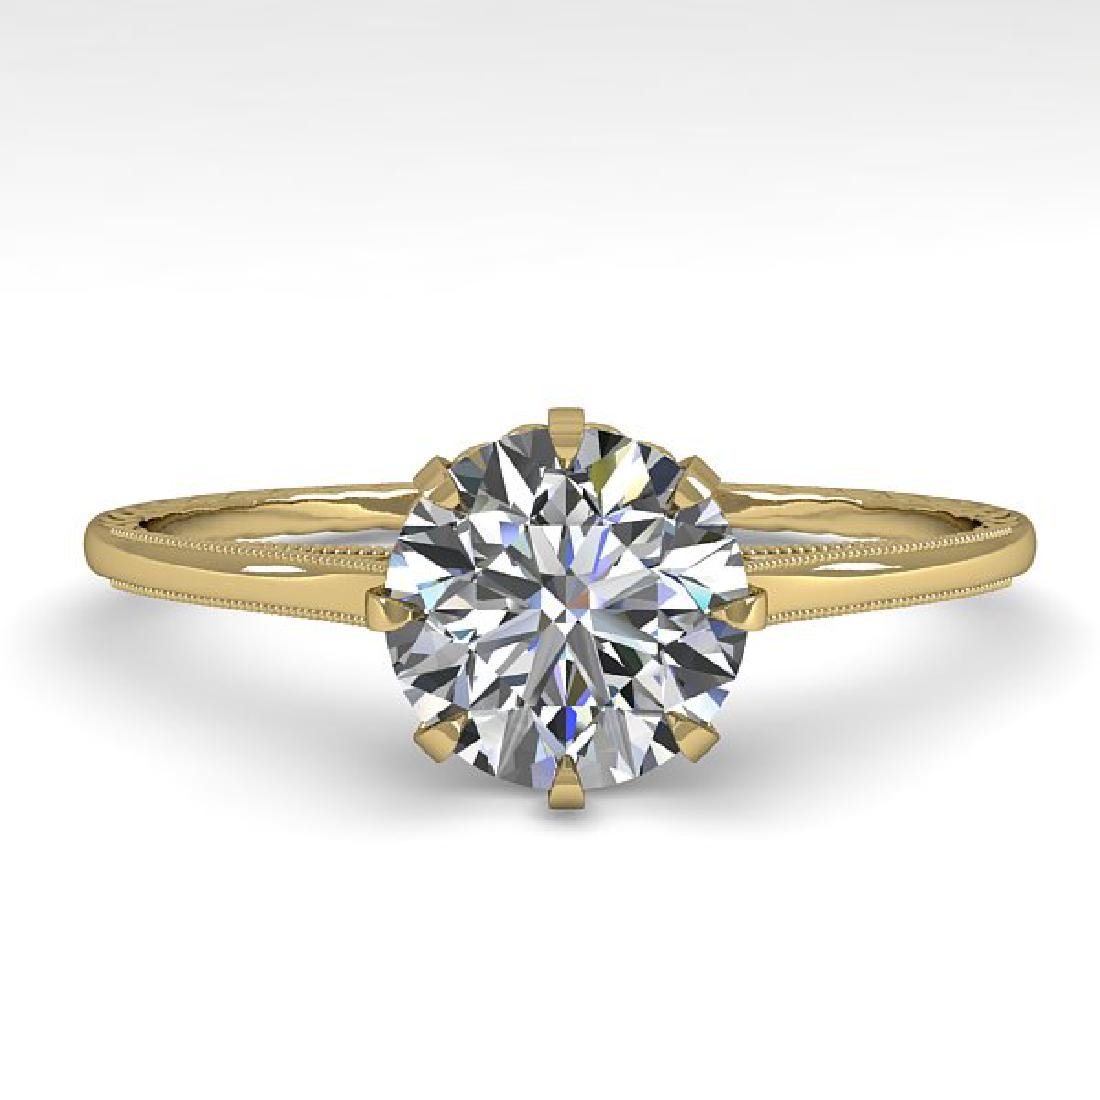 1.01 CTW Certified VS/SI Diamond Ring 14K Yellow Gold